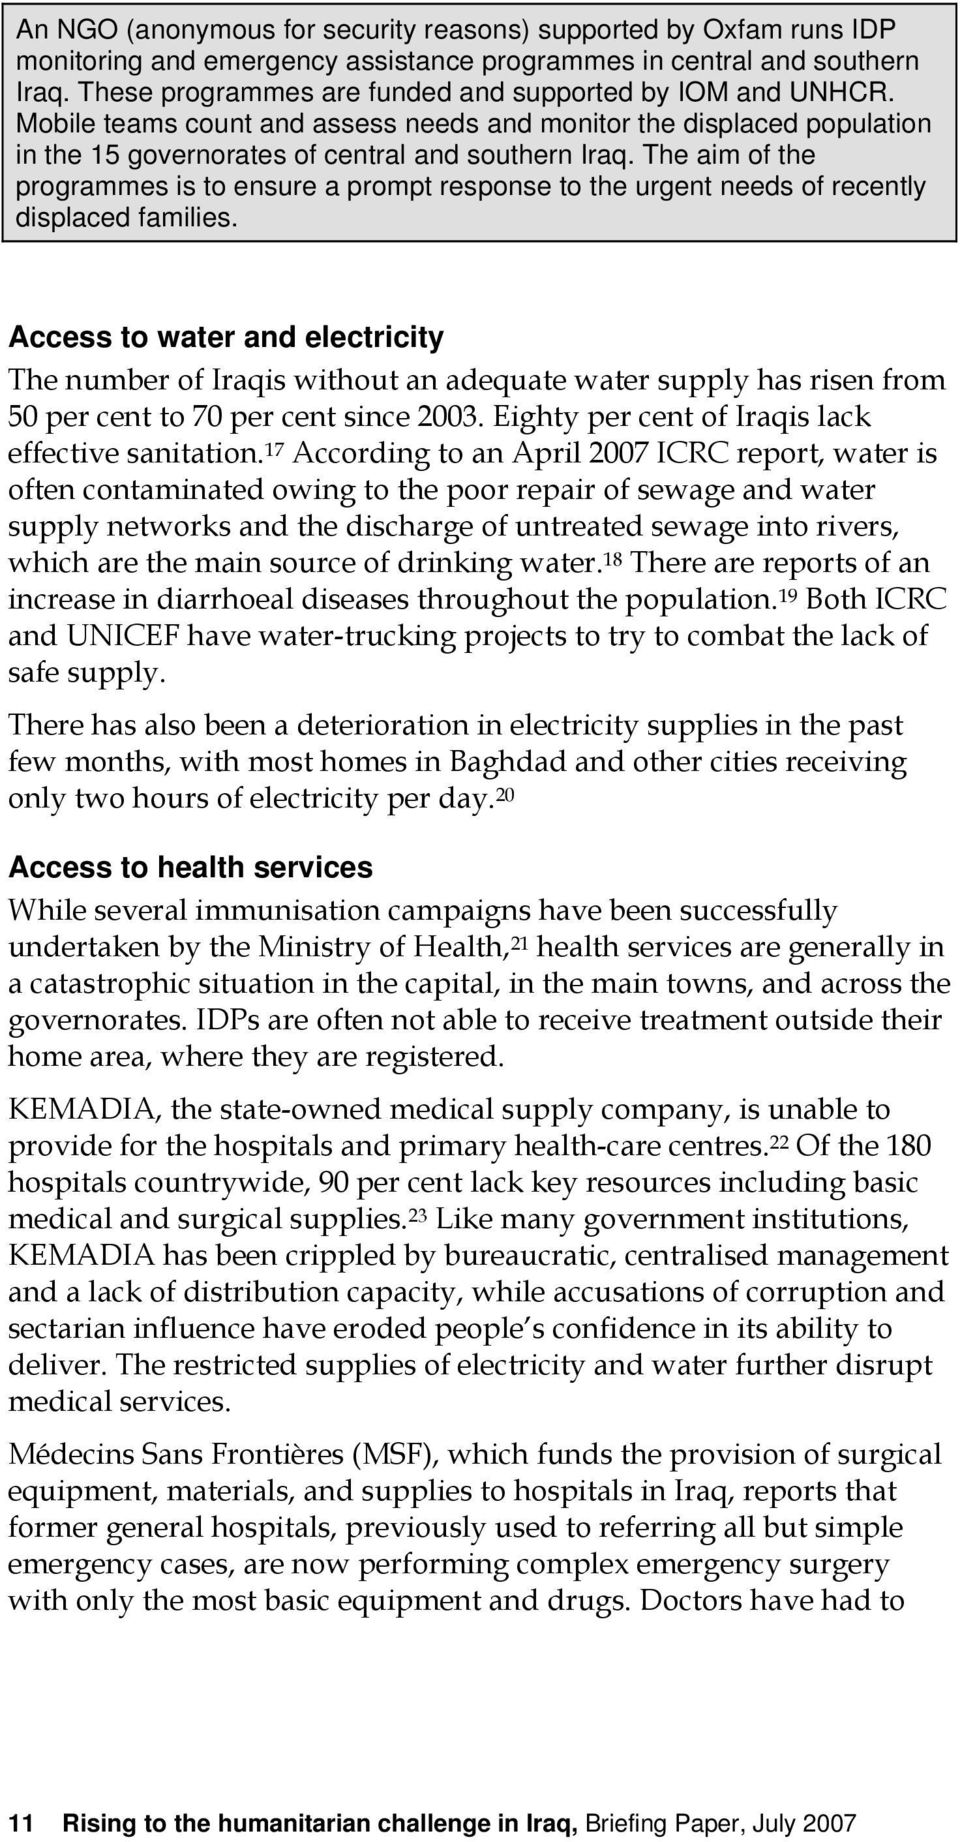 The aim of the programmes is to ensure a prompt response to the urgent needs of recently displaced families.